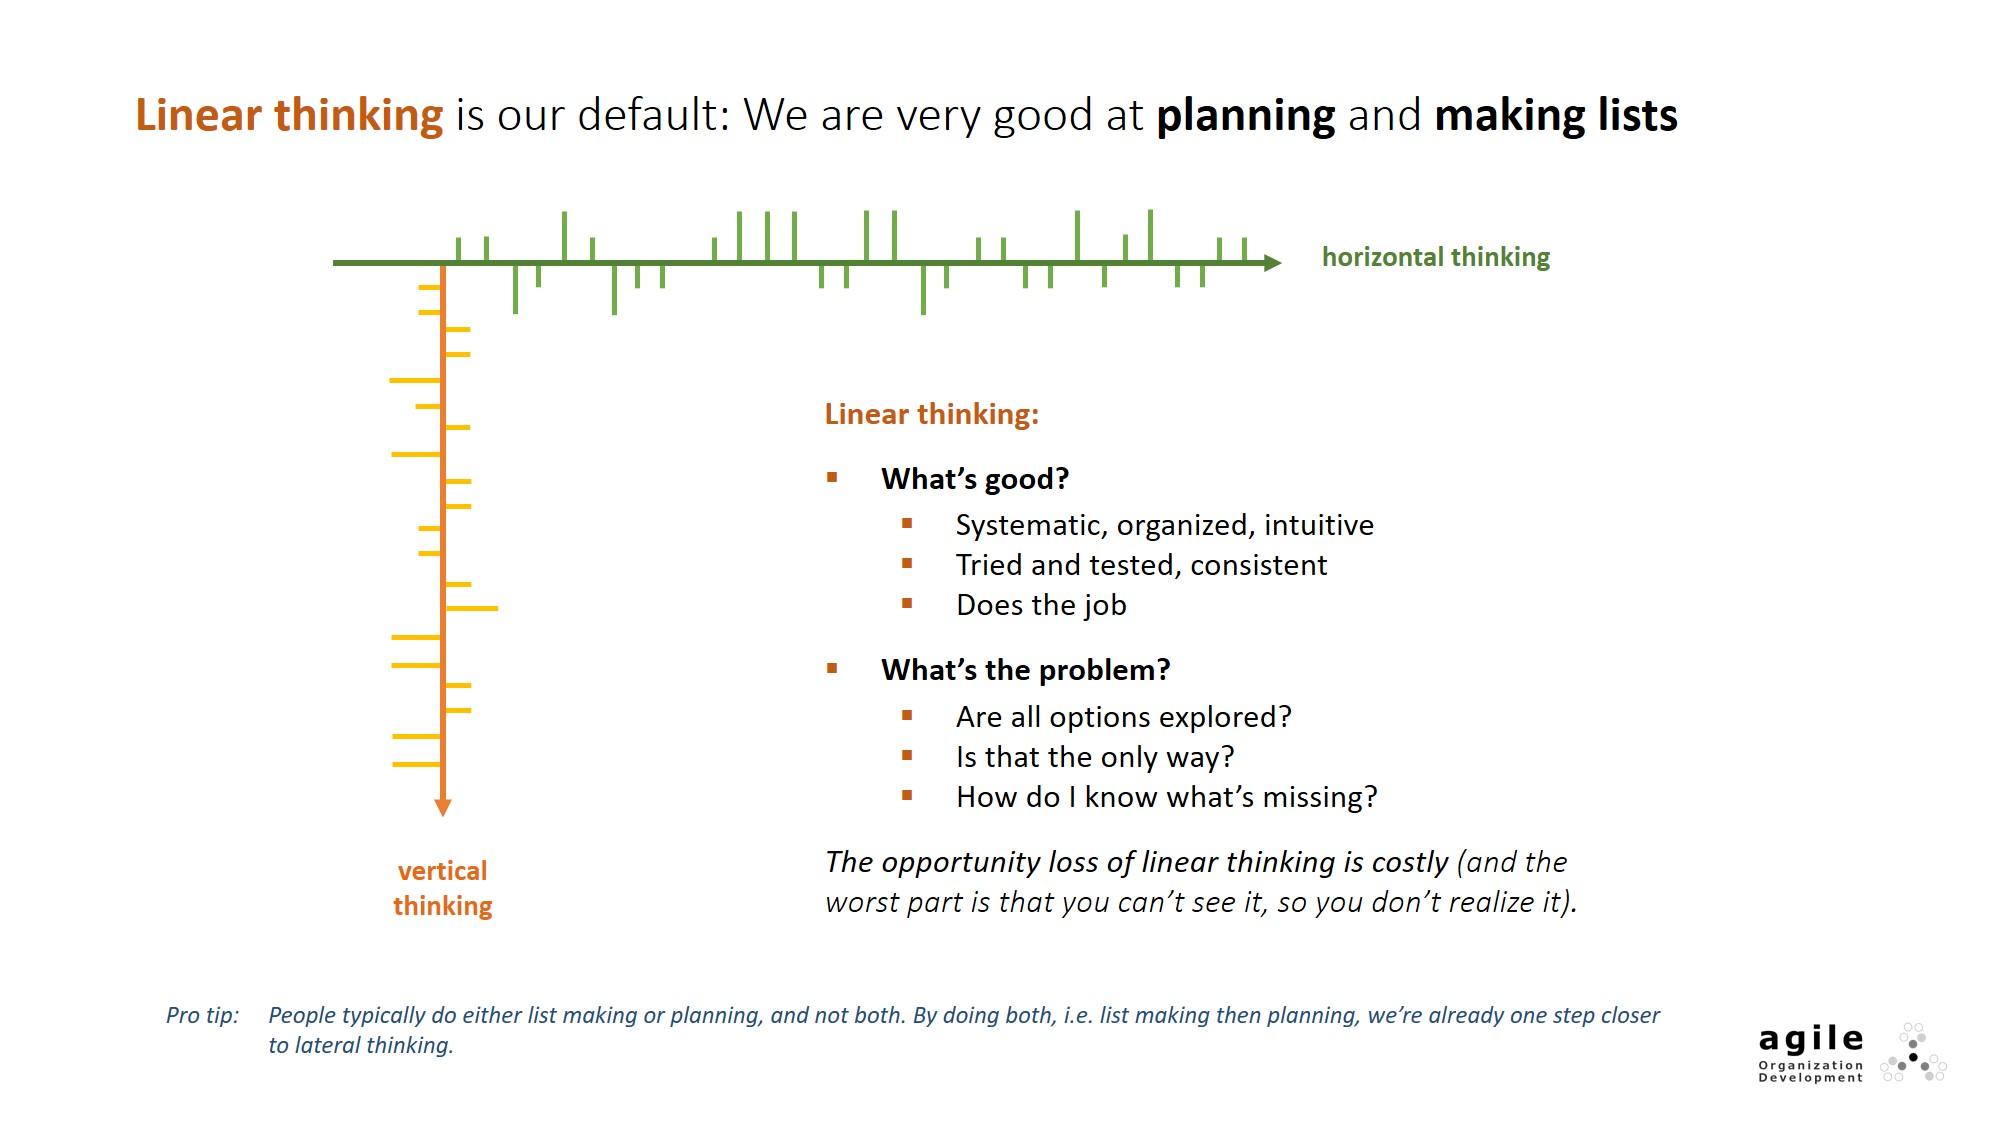 Linear thinking is our default: We are very good at planning and making lists